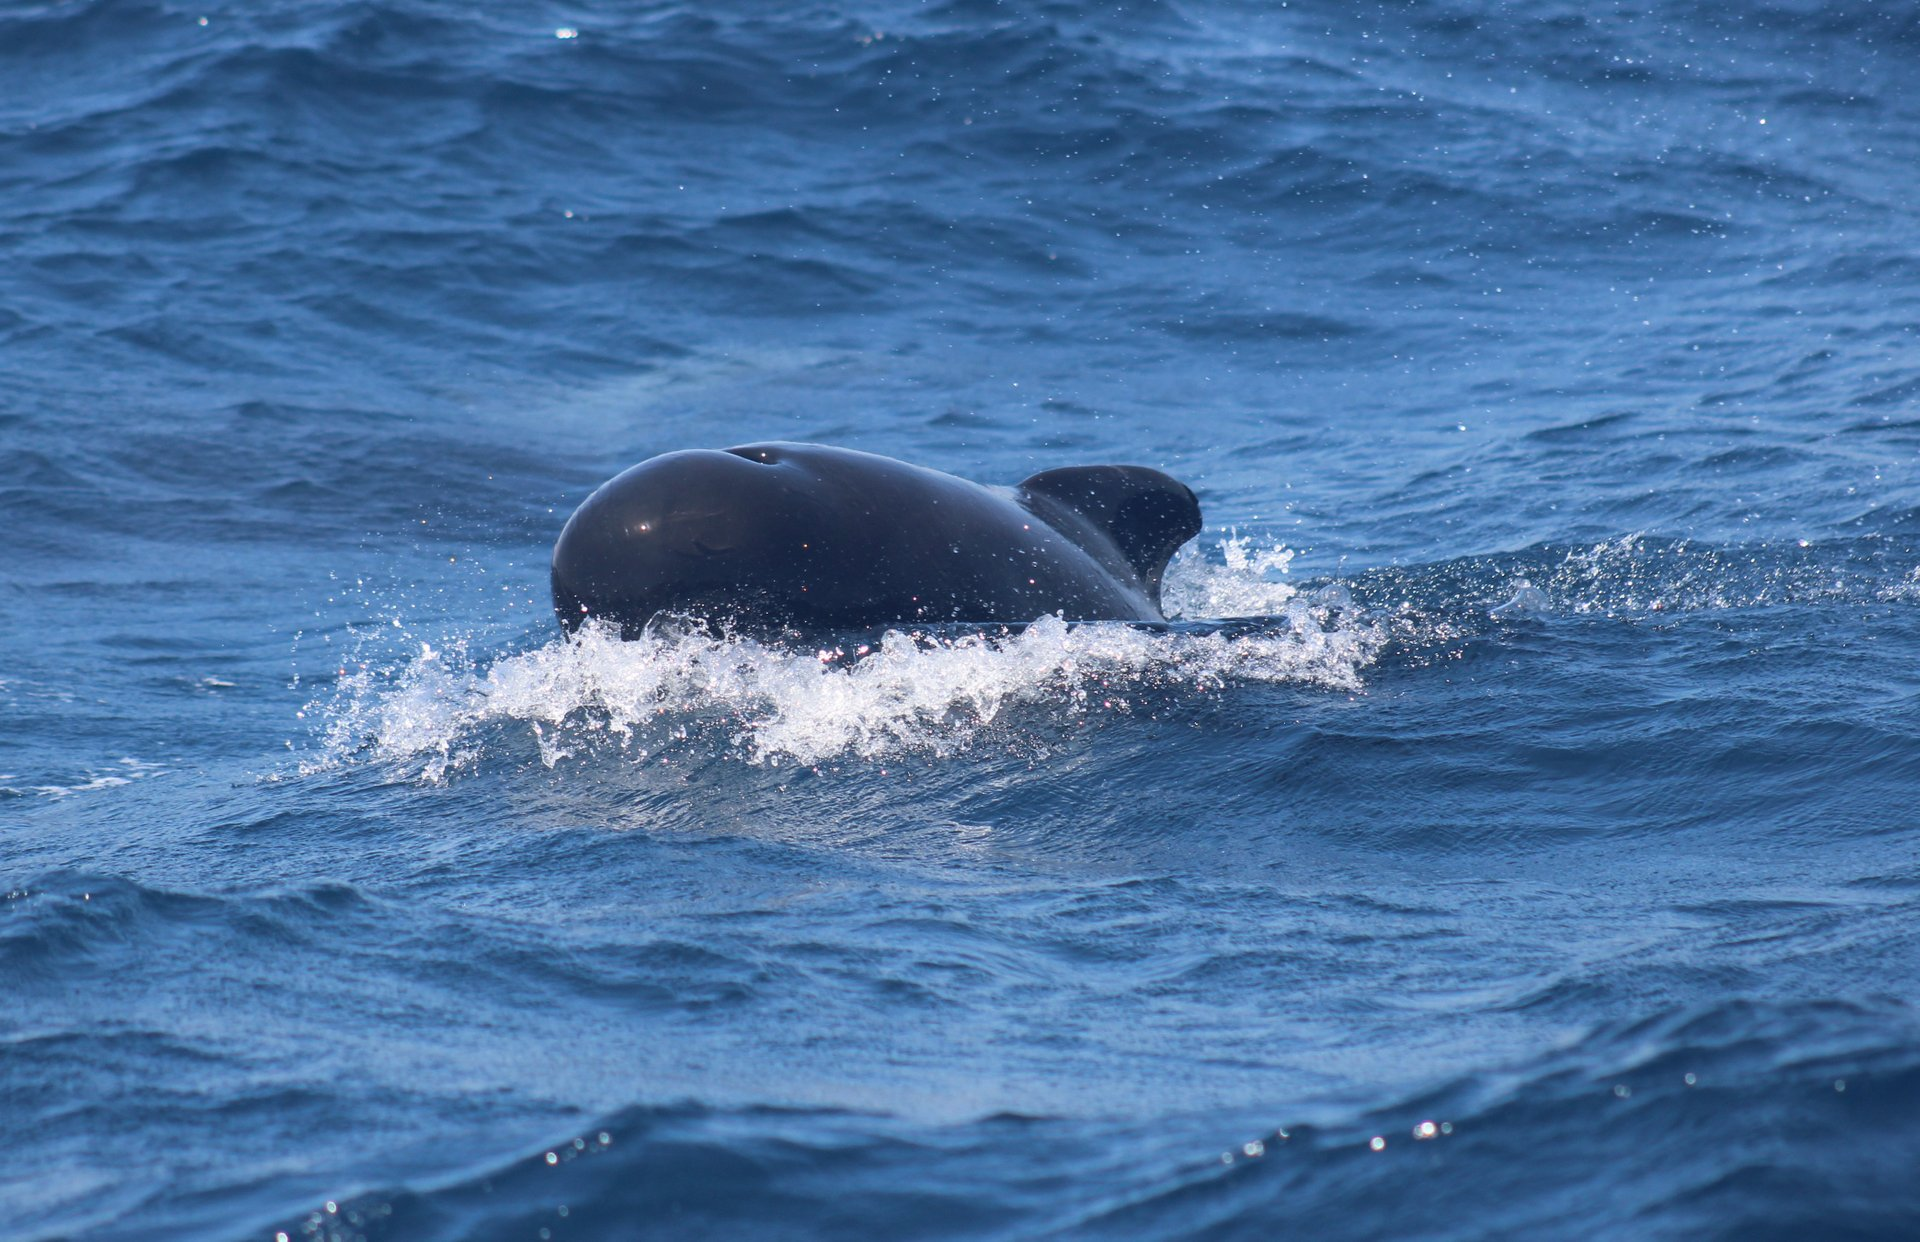 Pilot whale in Strait of Gibraltar 2020